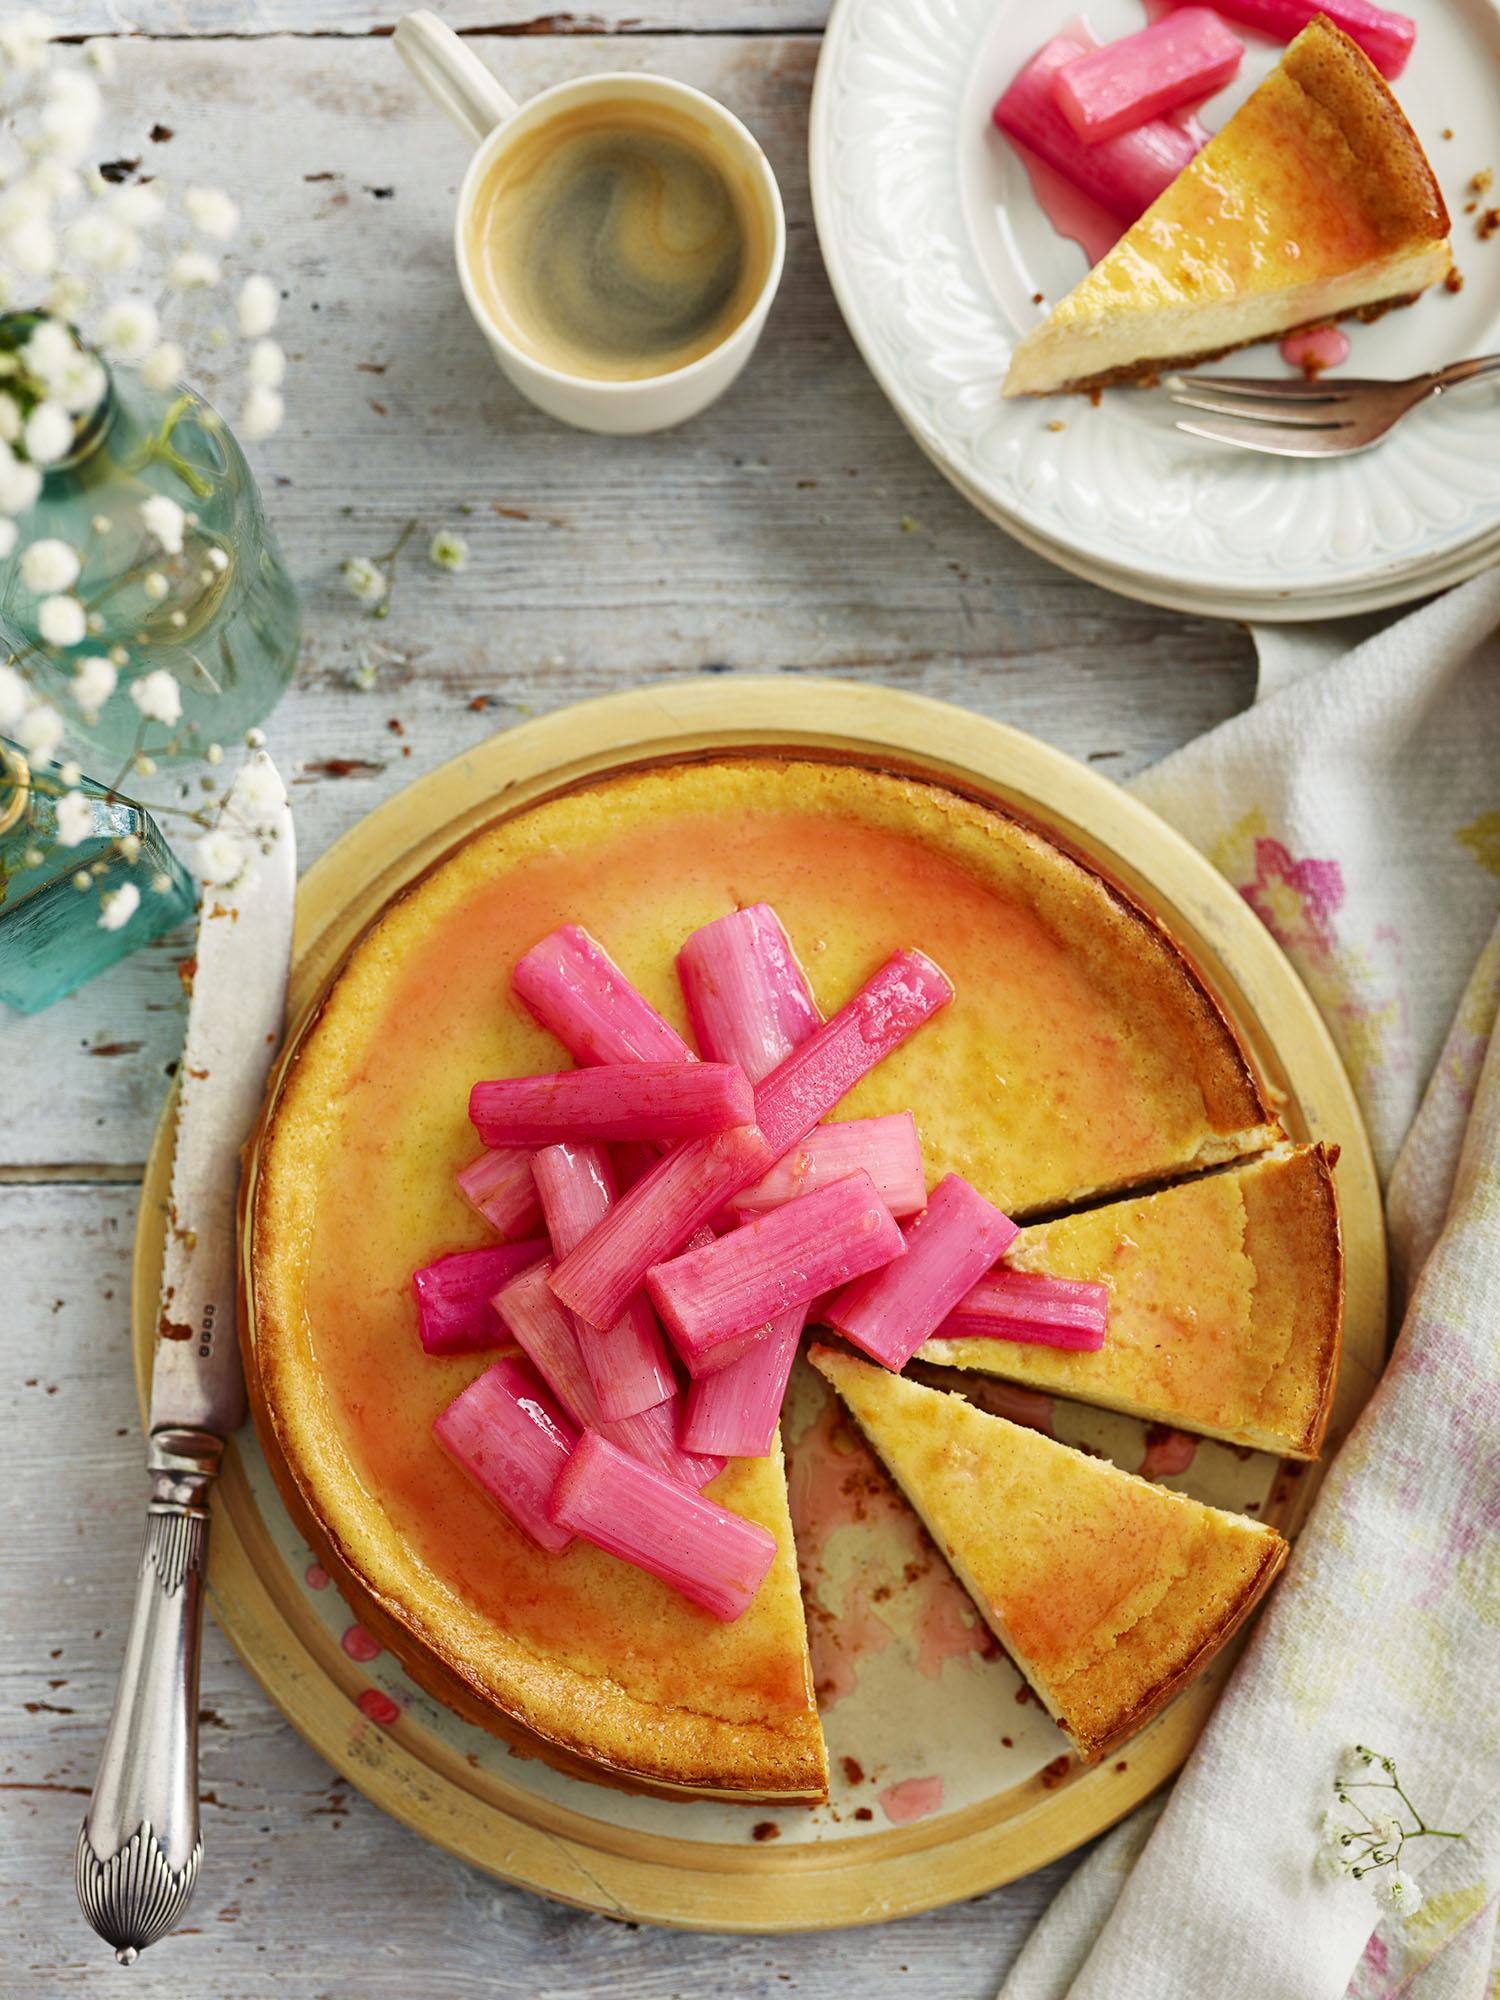 Rhubarb New York Baked Cheesecake Photograph Gareth Morgans Prop Styling Tonia Shuttleworth